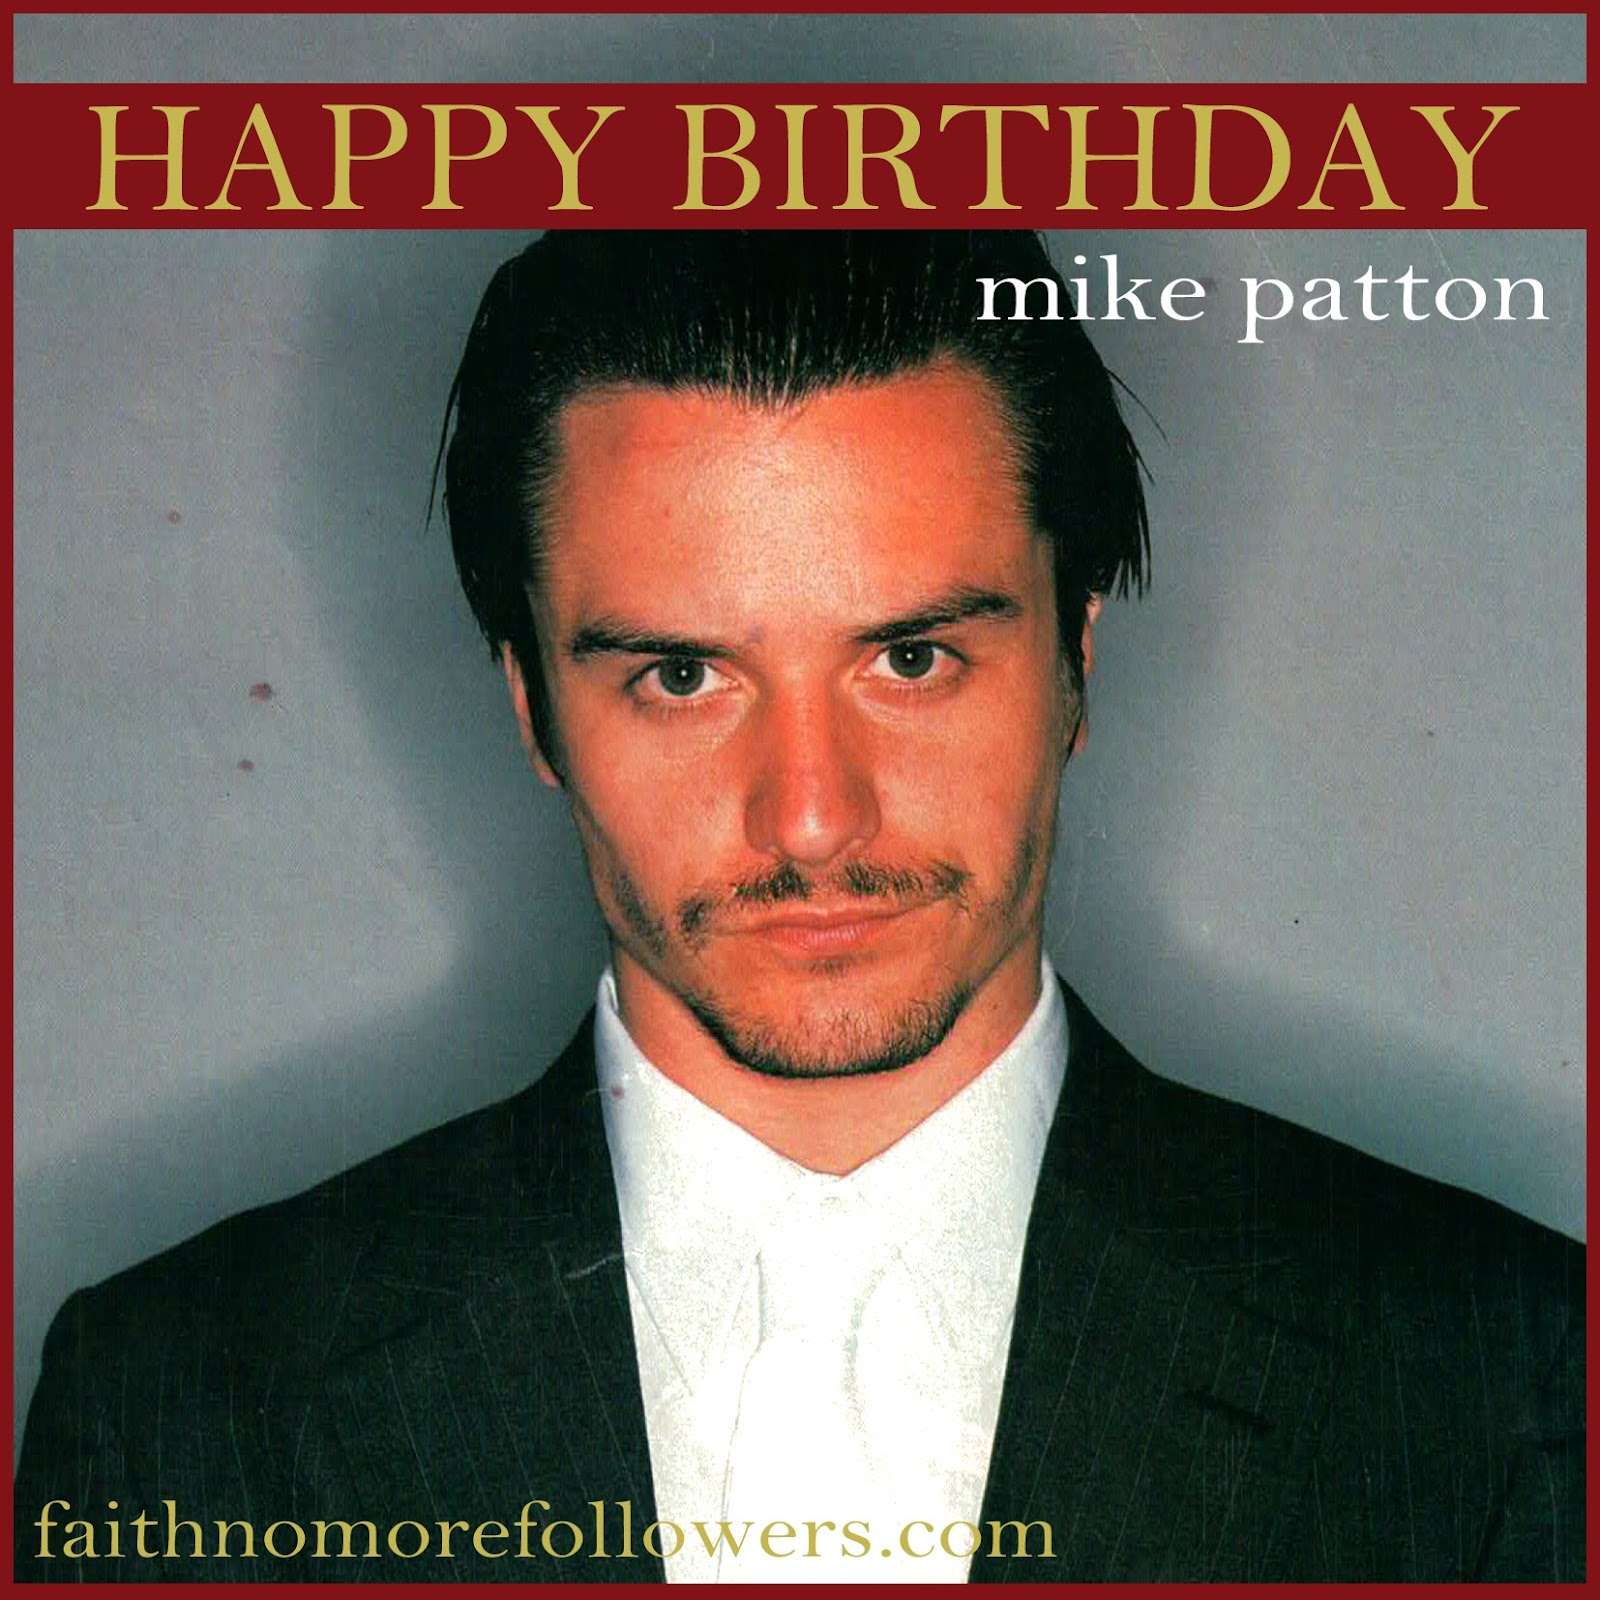 Mike patton is god